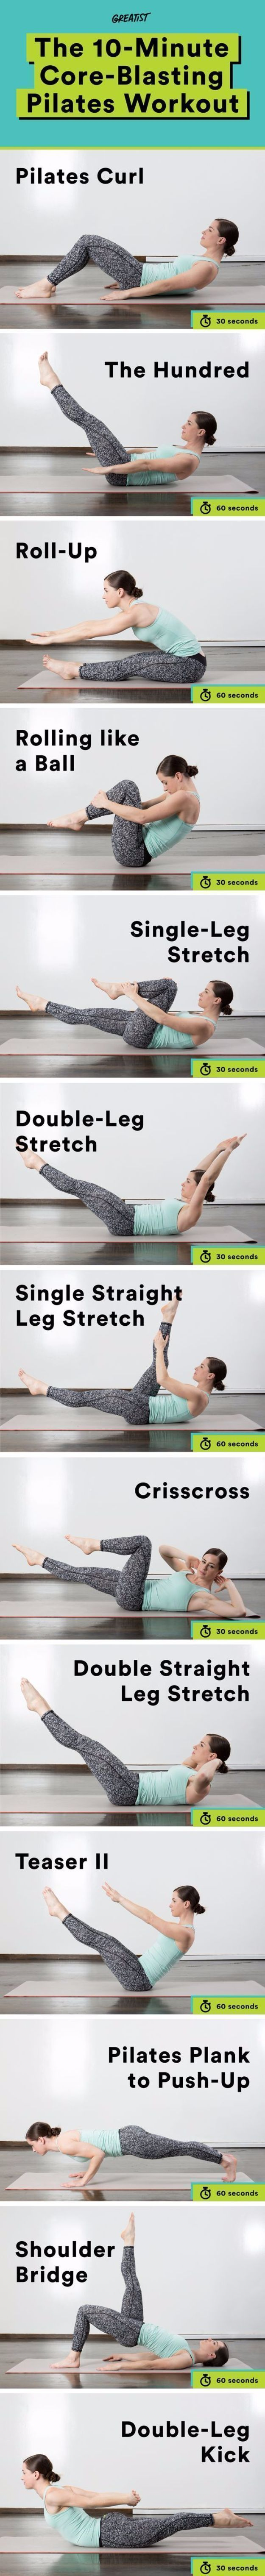 Best Quick At Home Workouts - 10 Minute Core Workout Pilates Curl - Easy Tutorials and Work Out Ideas for Strength Training and Exercises - Step by Step Tutorials for Butt Workouts, Abs Tummy and Stomach, Legs, Arms, Chest and Back - Fast 5 and 10 Minute